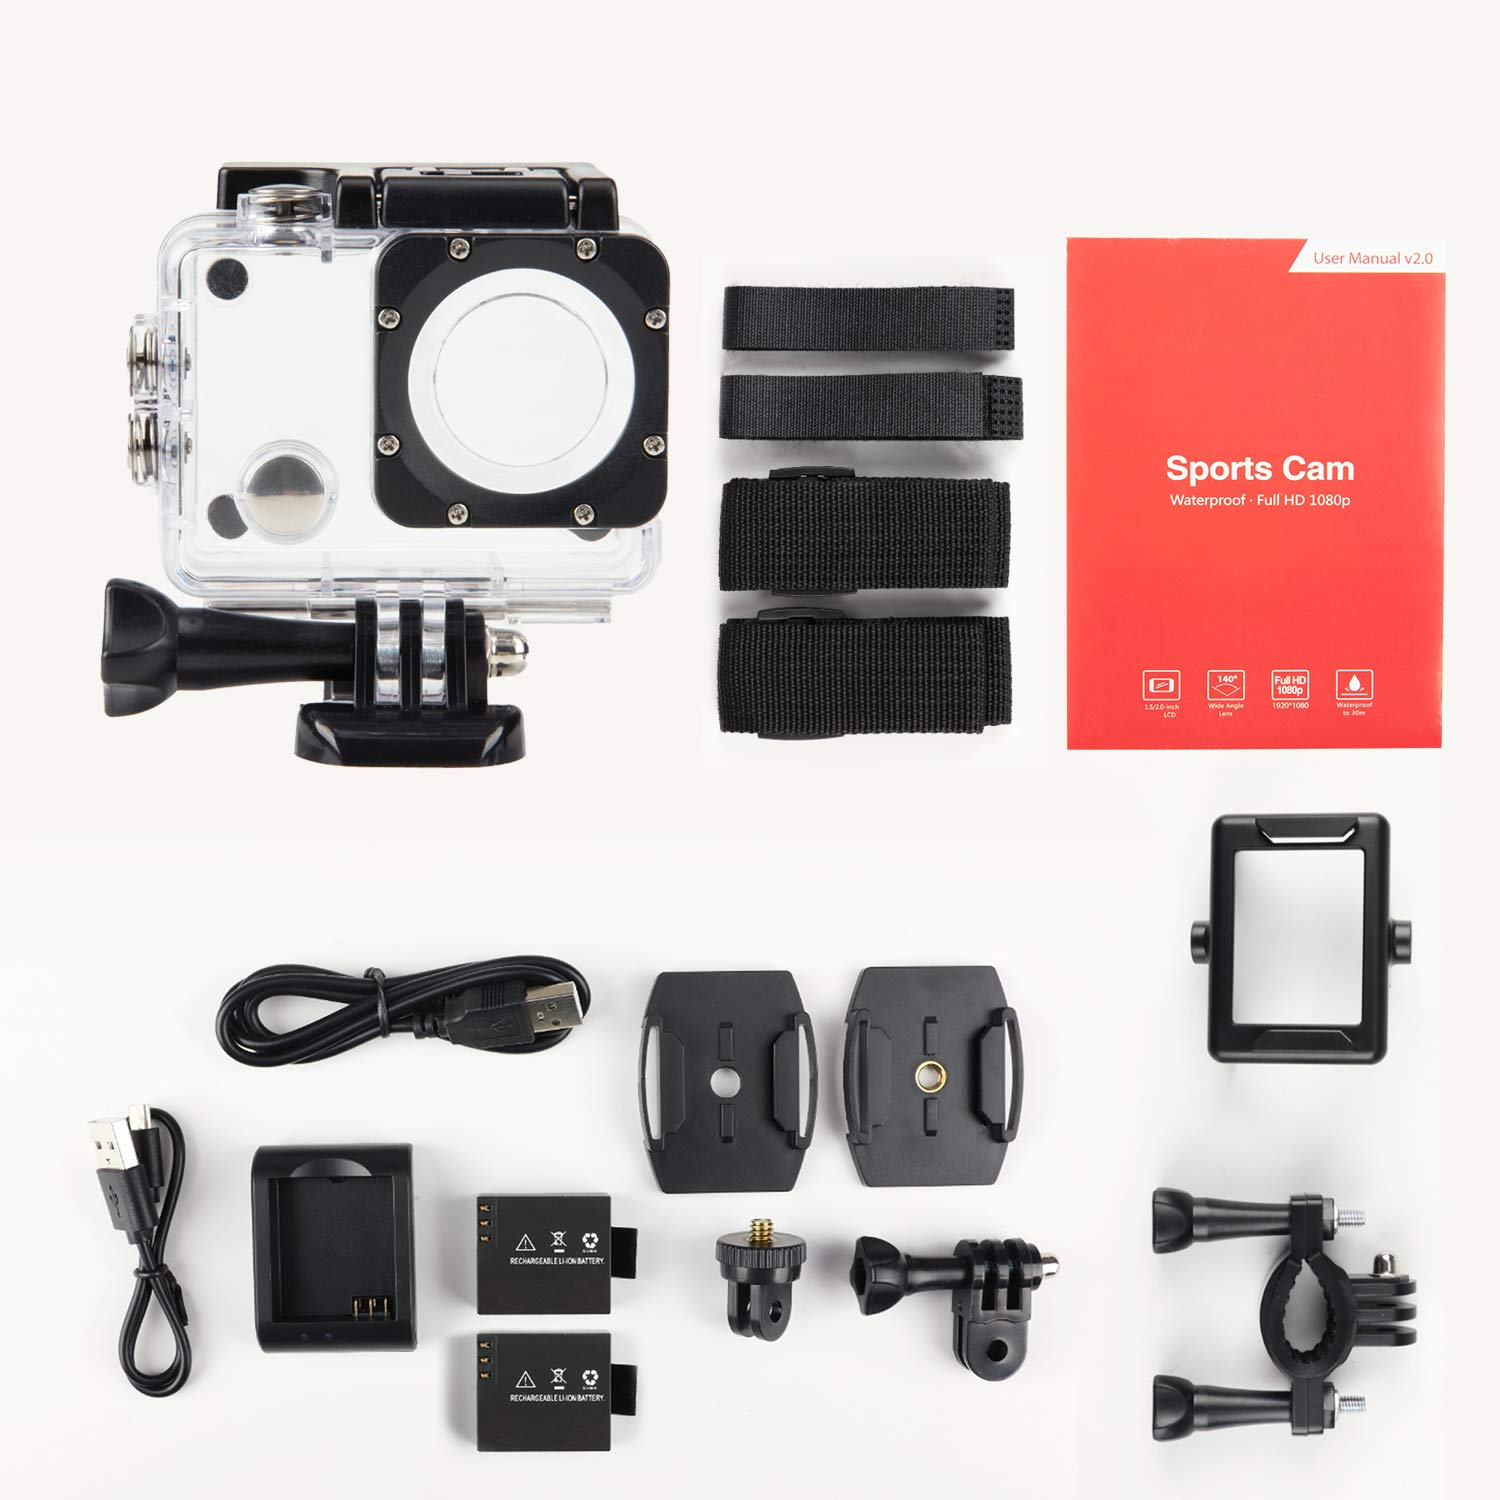 Mounting Accessories Kit 170/° Wide Angle Underwater Camcorder with 2 Batteries Piwoka Sports Action Camera 1080P Ultra HD 12MP Portable Waterproof Camera Battery Charger